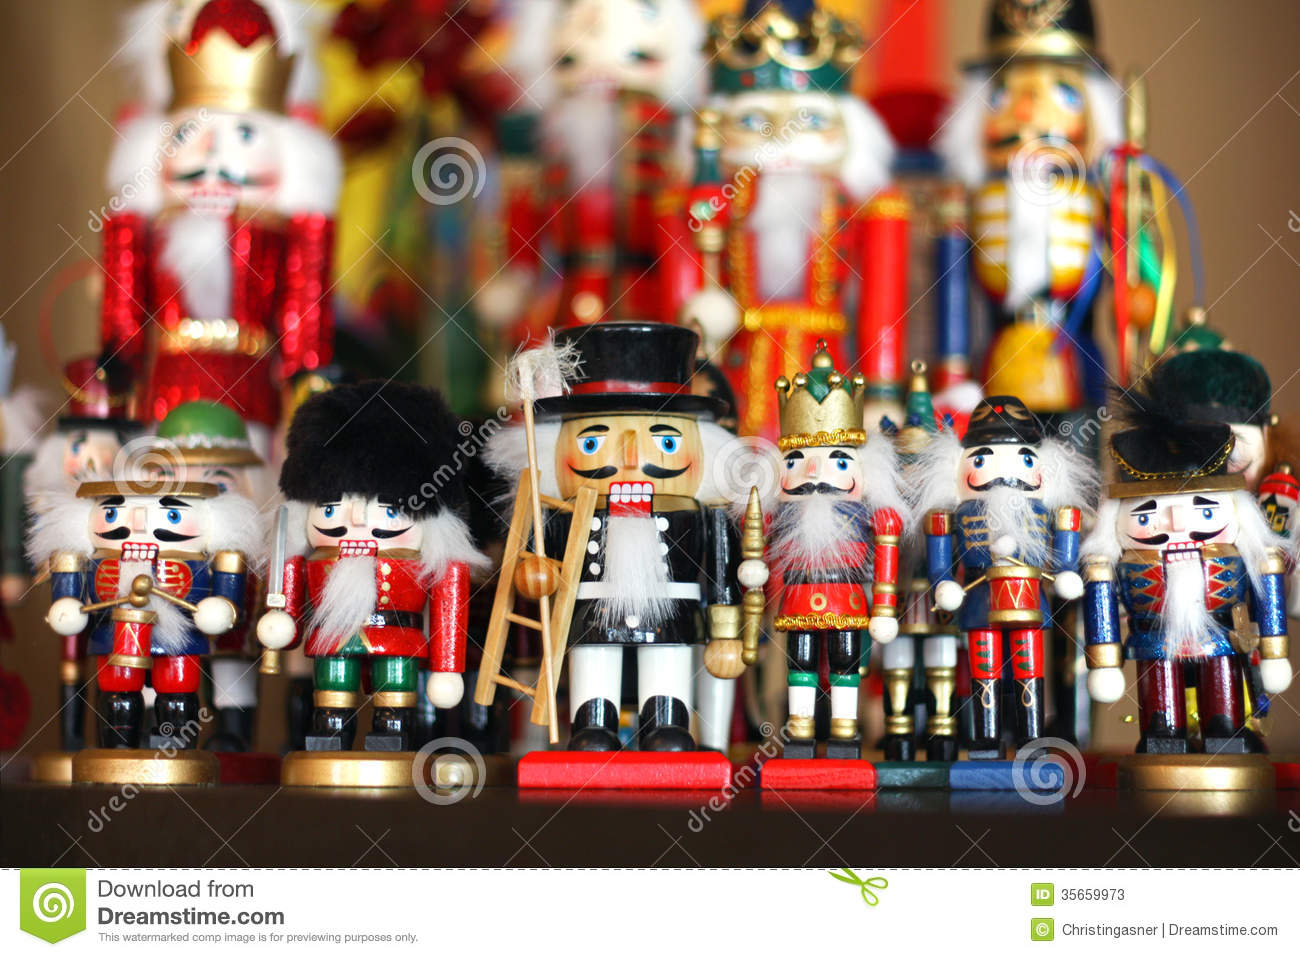 Christmas Nutcracker Collection Stock Image - Image of colorful ...